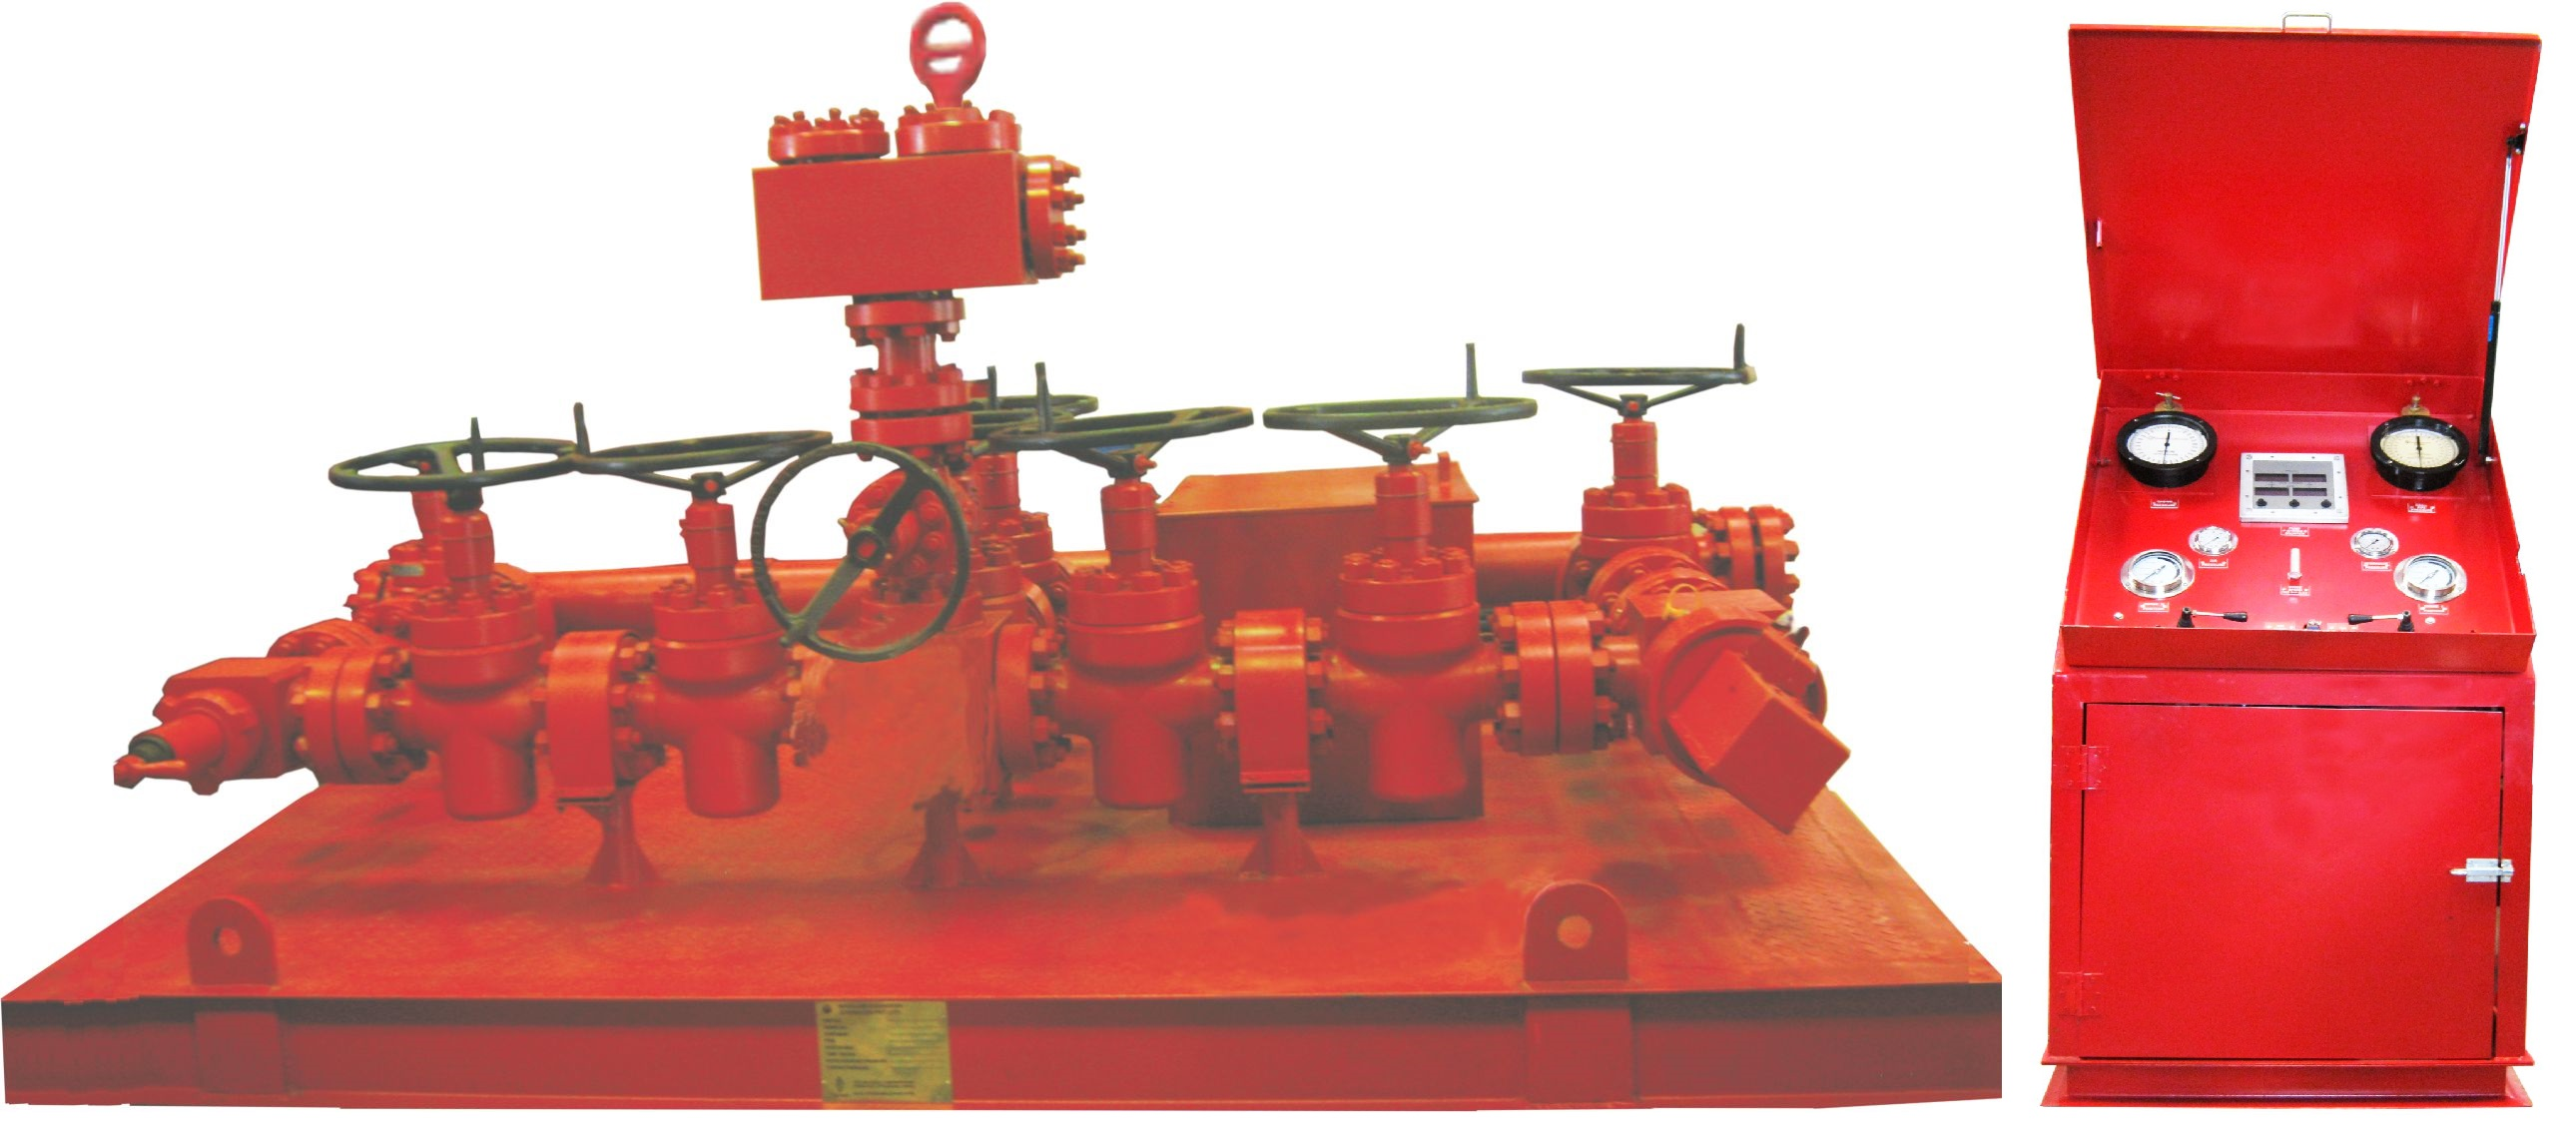 Manifold systems for drilling and production applications